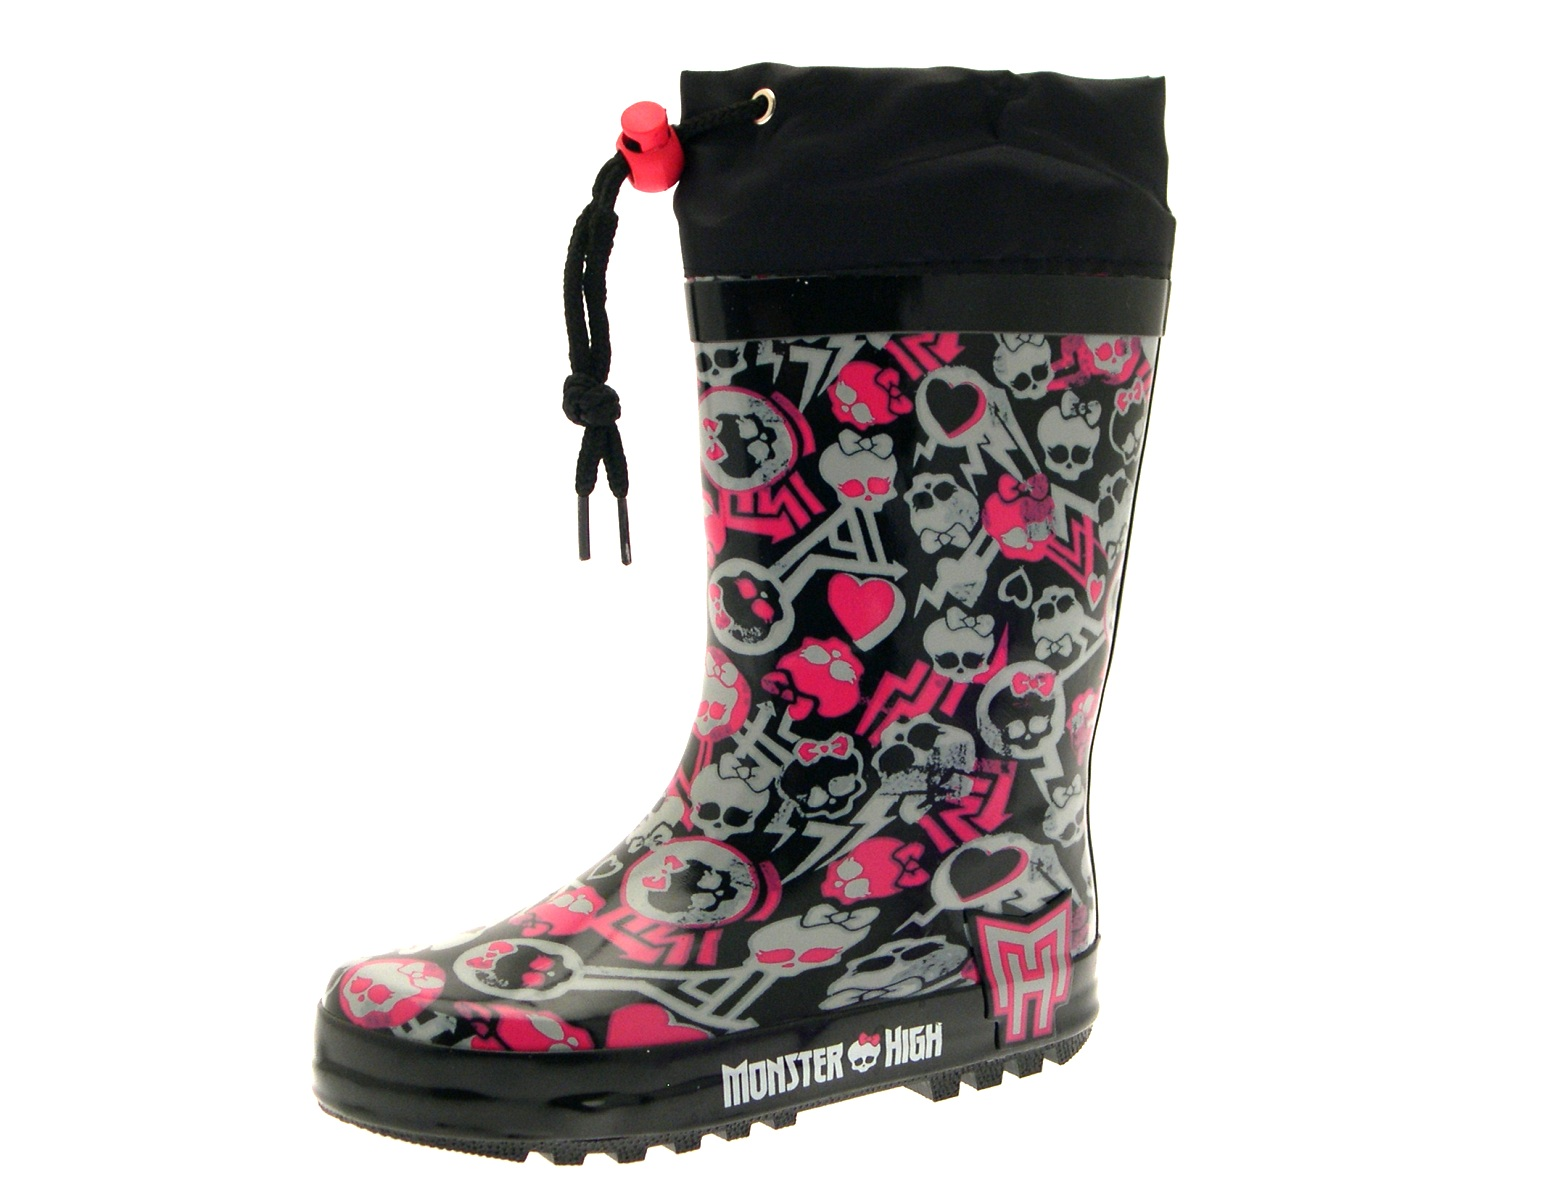 Snow Boots Size 5 Uk | Homewood Mountain Ski Resort